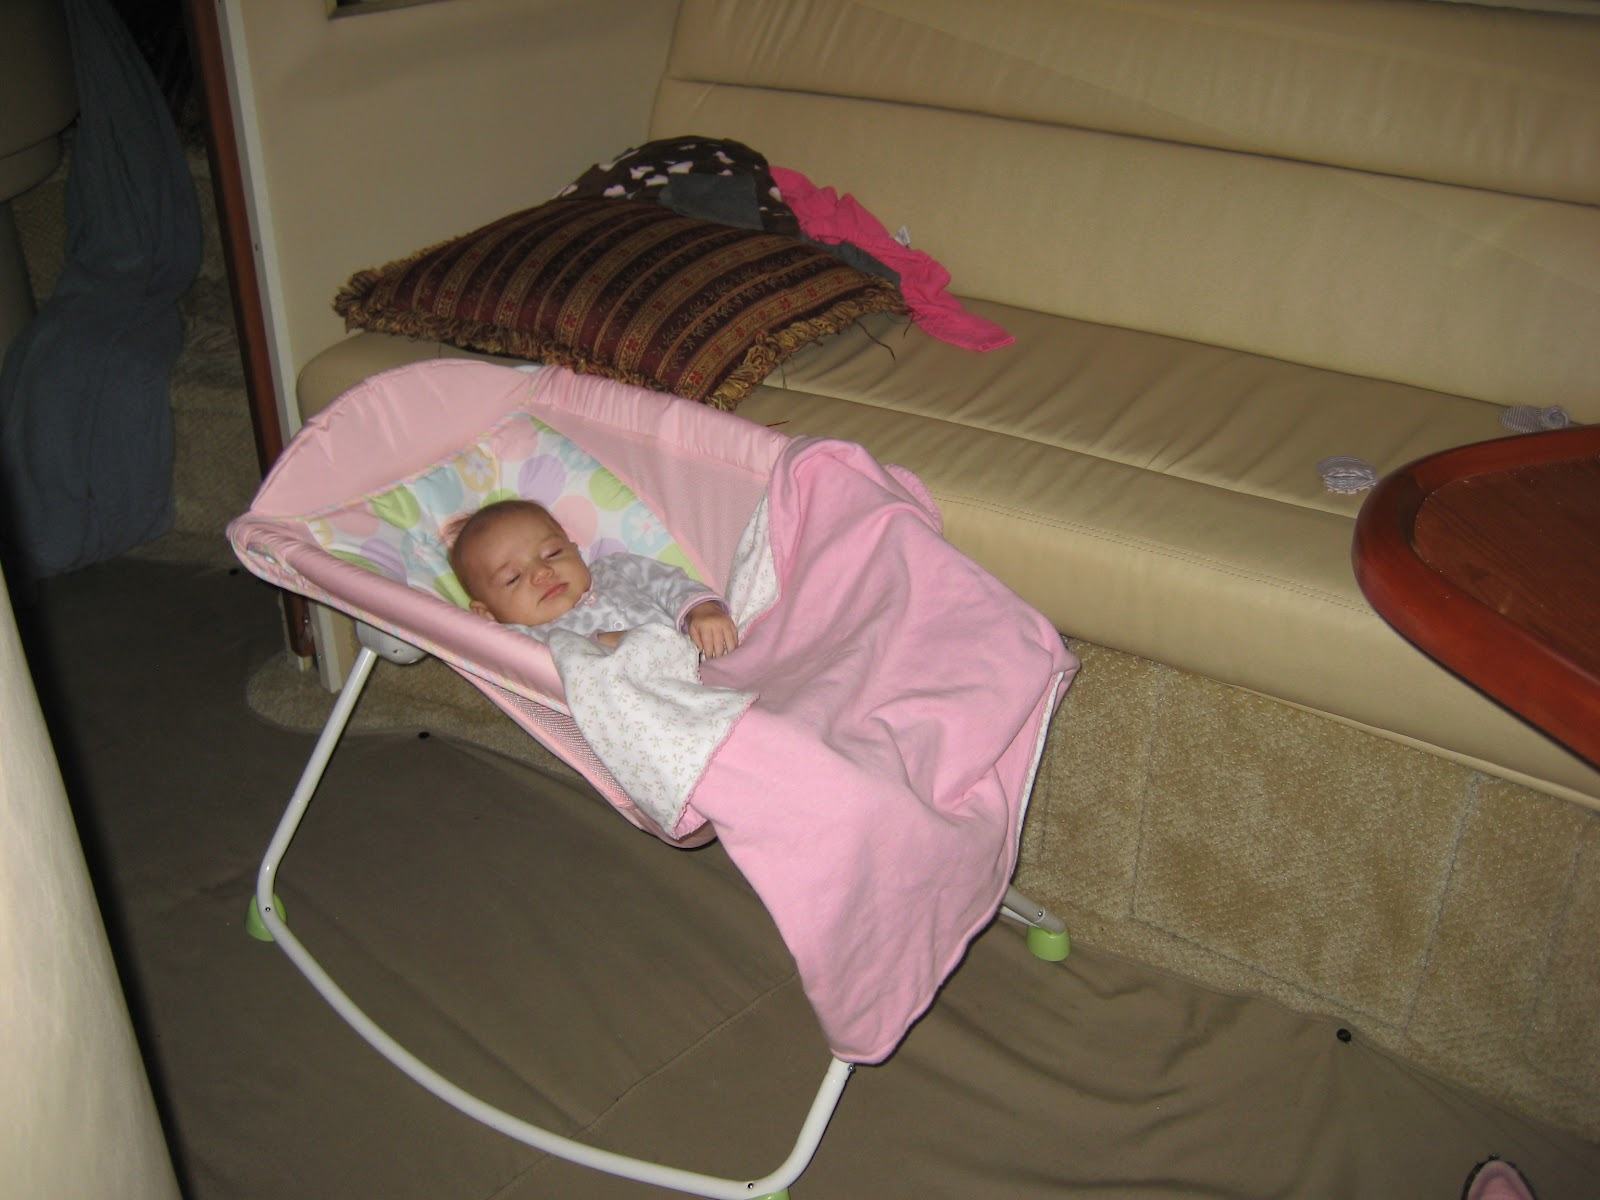 What Can Baby Sleep In Next To Bed Bed Options For A Newborn Infant Or Baby Sleeping On Board A